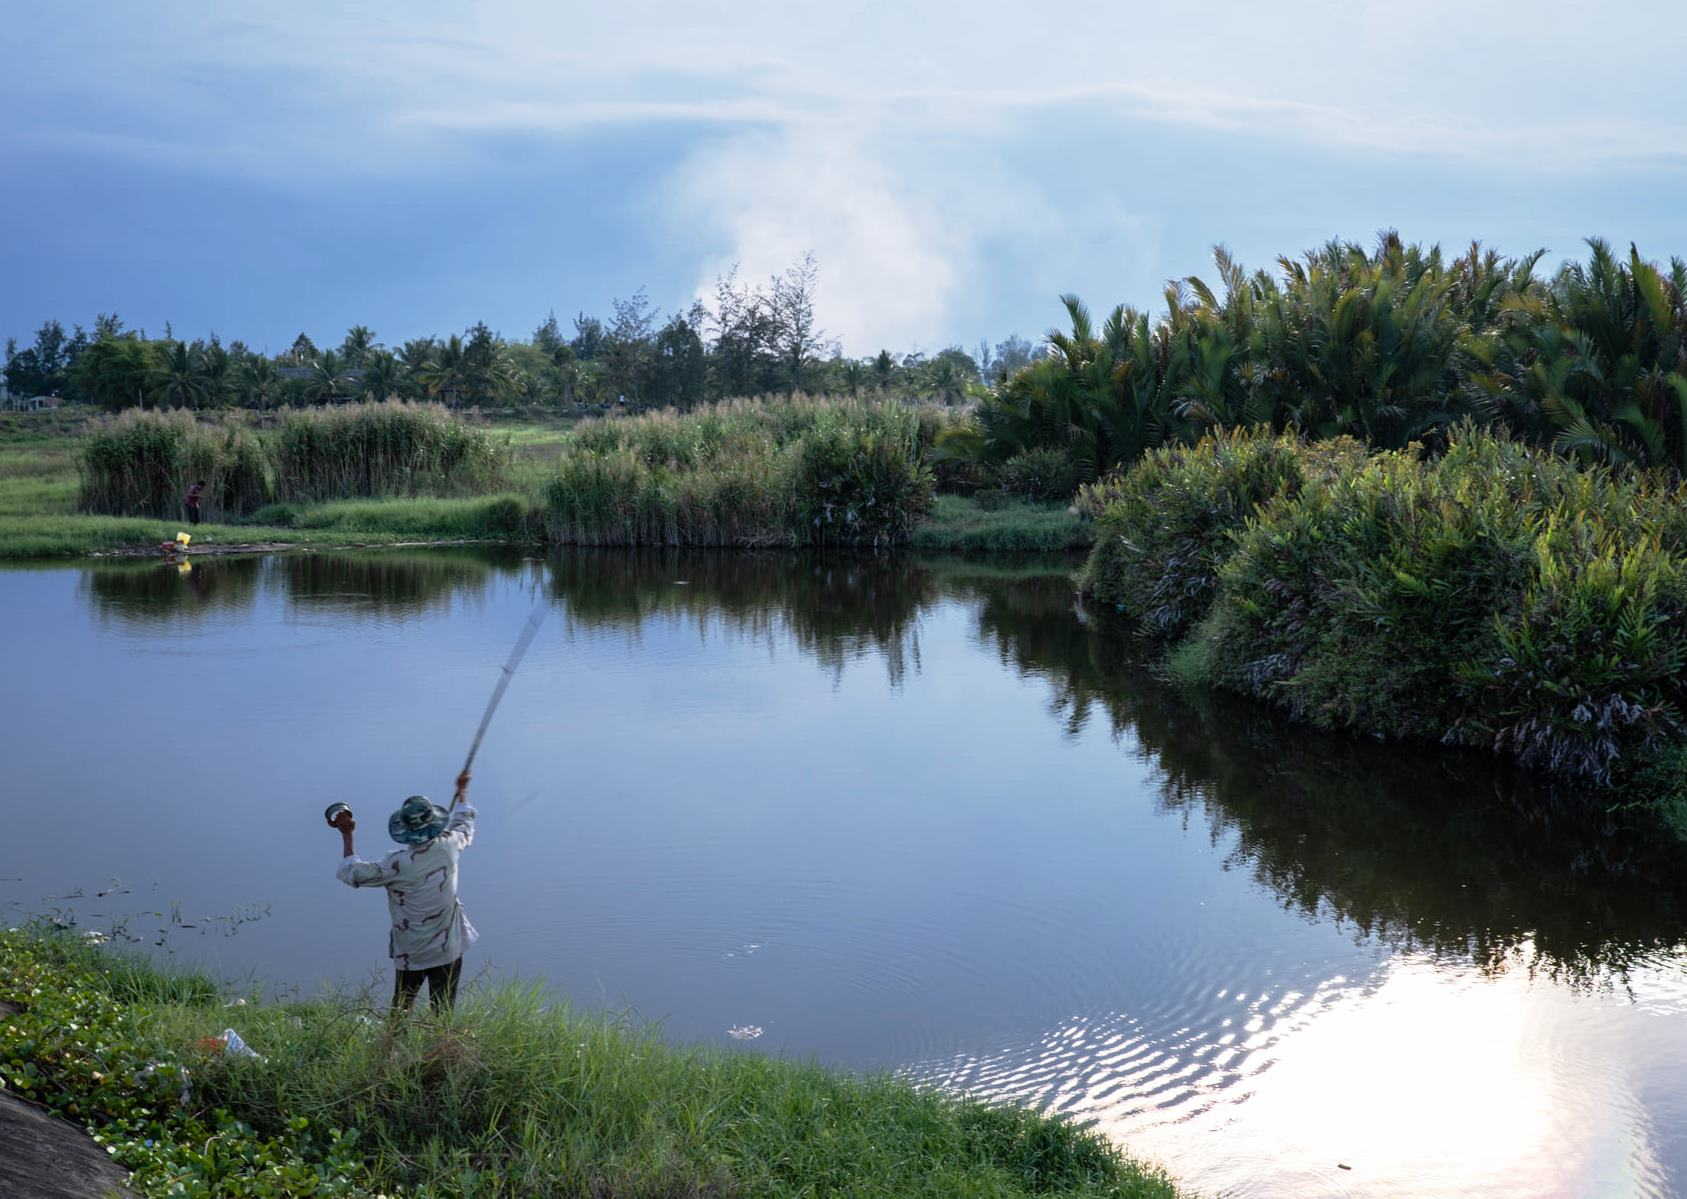 A man fishes at a river with smoke from the Cam Ha landfill in the background in Hoi An City, Quang Nam Province, Vietnam in this photo taken on September 10, 2020. Photo: Etienne Bossot